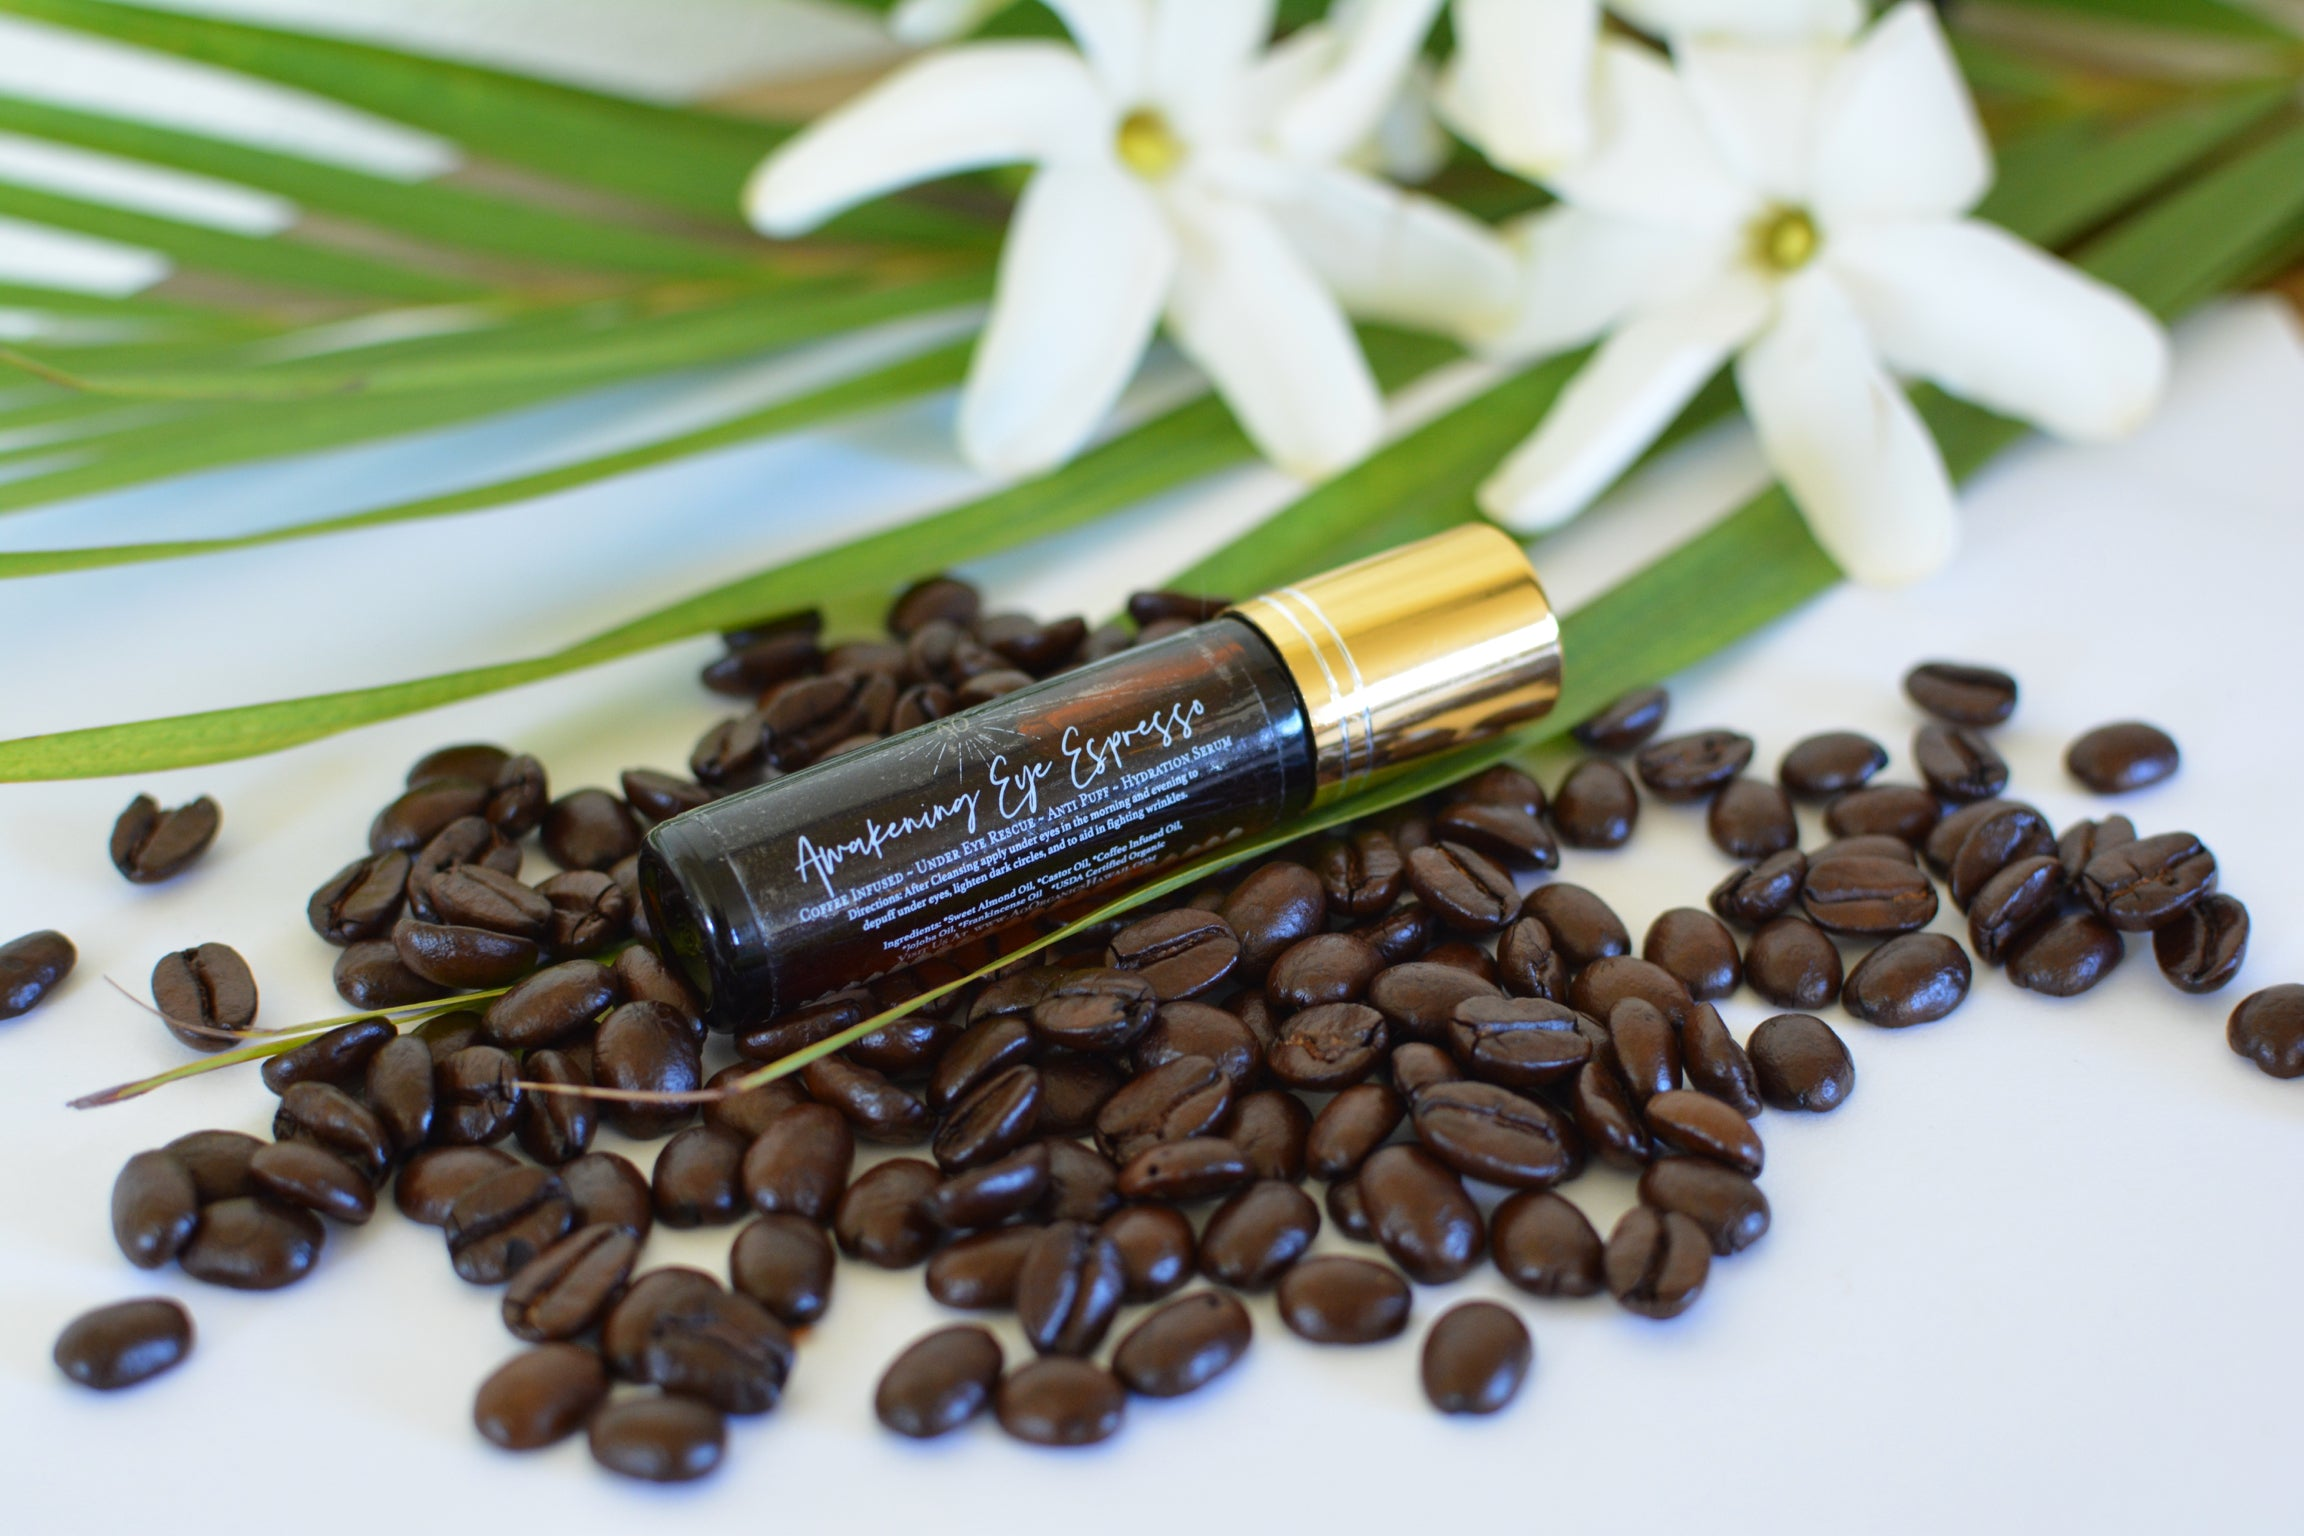 Awakening Eye Serum